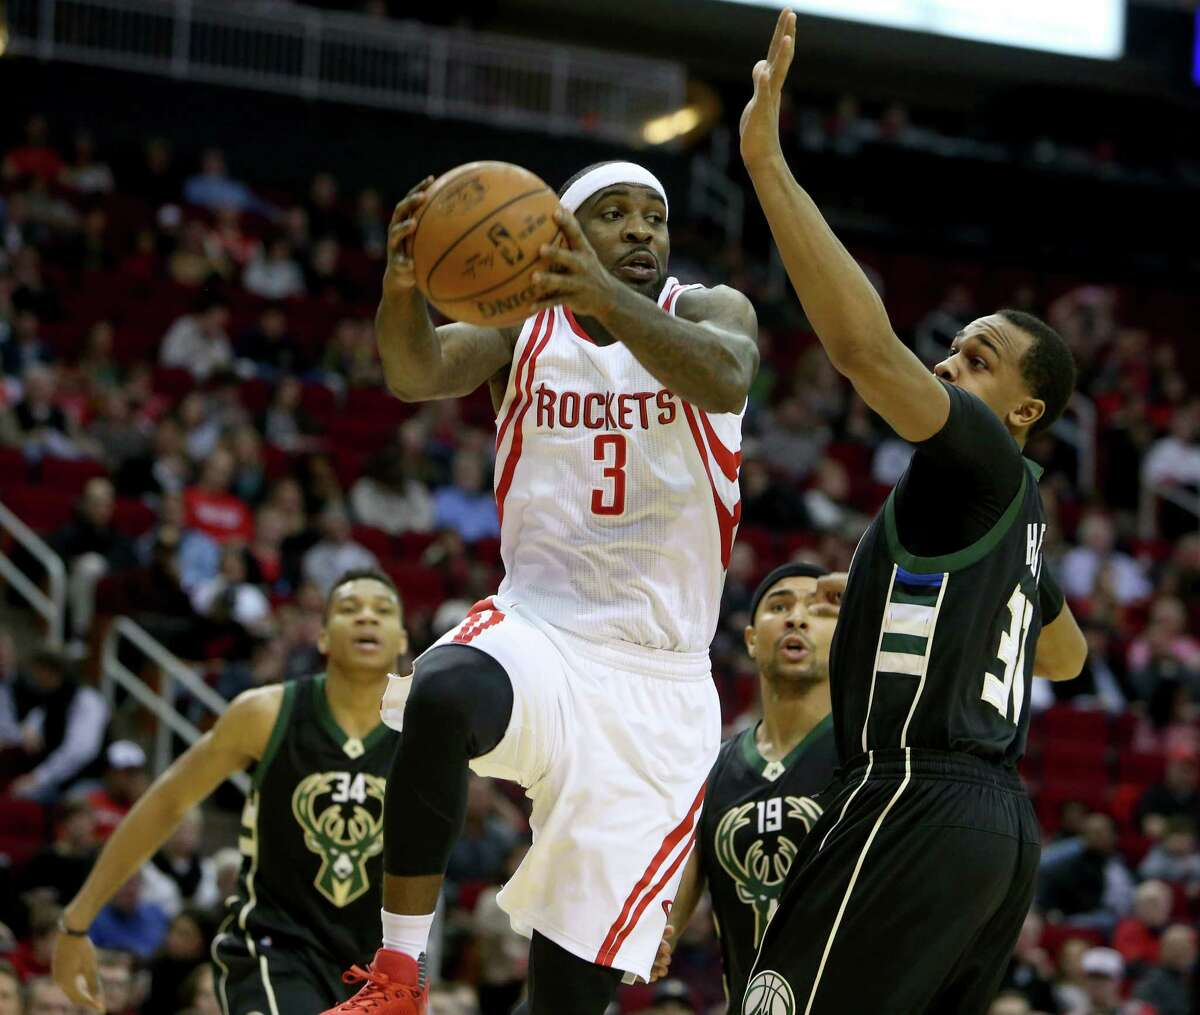 Ty Lawson (3) and interim coach J.B. Bickerstaff want the guard to return to his playmaking roots. It's something from which he strayed in the first half.